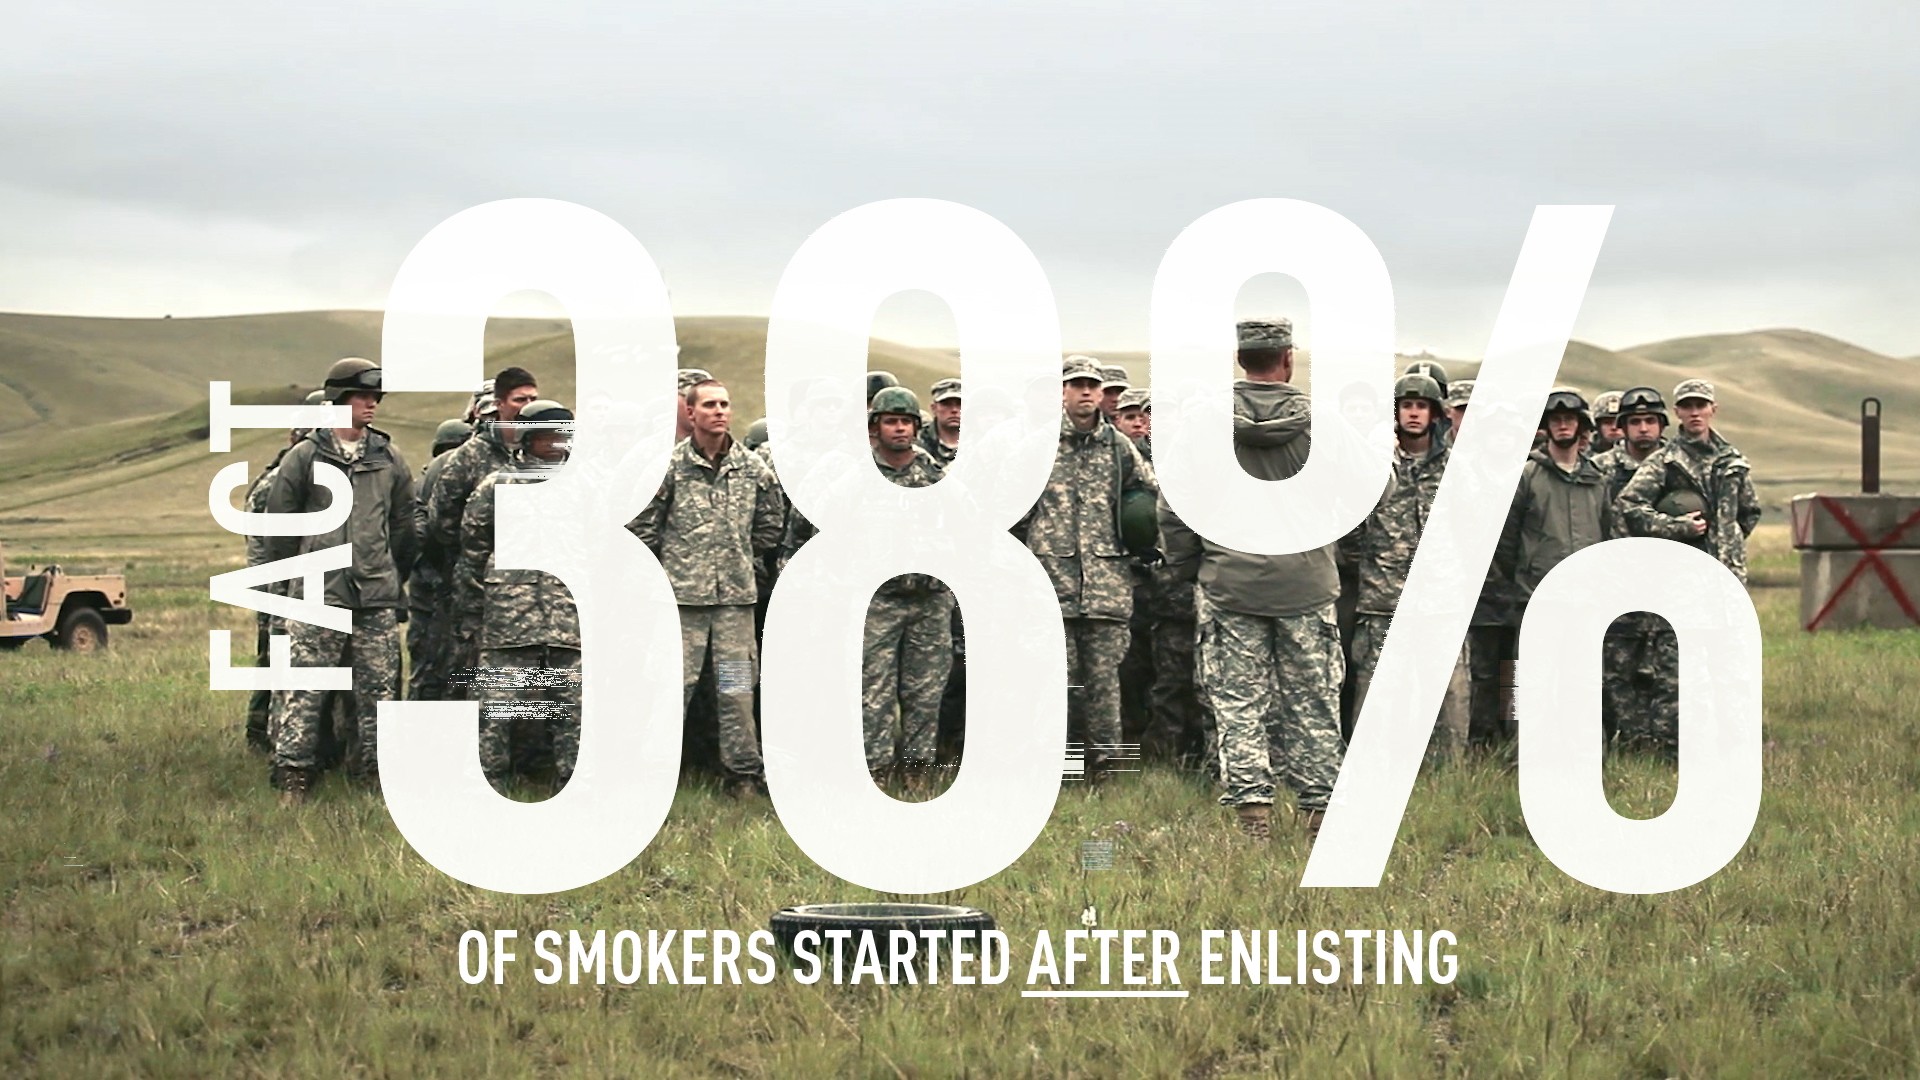 Fact: 38 percent of military smokers start after enlisting.